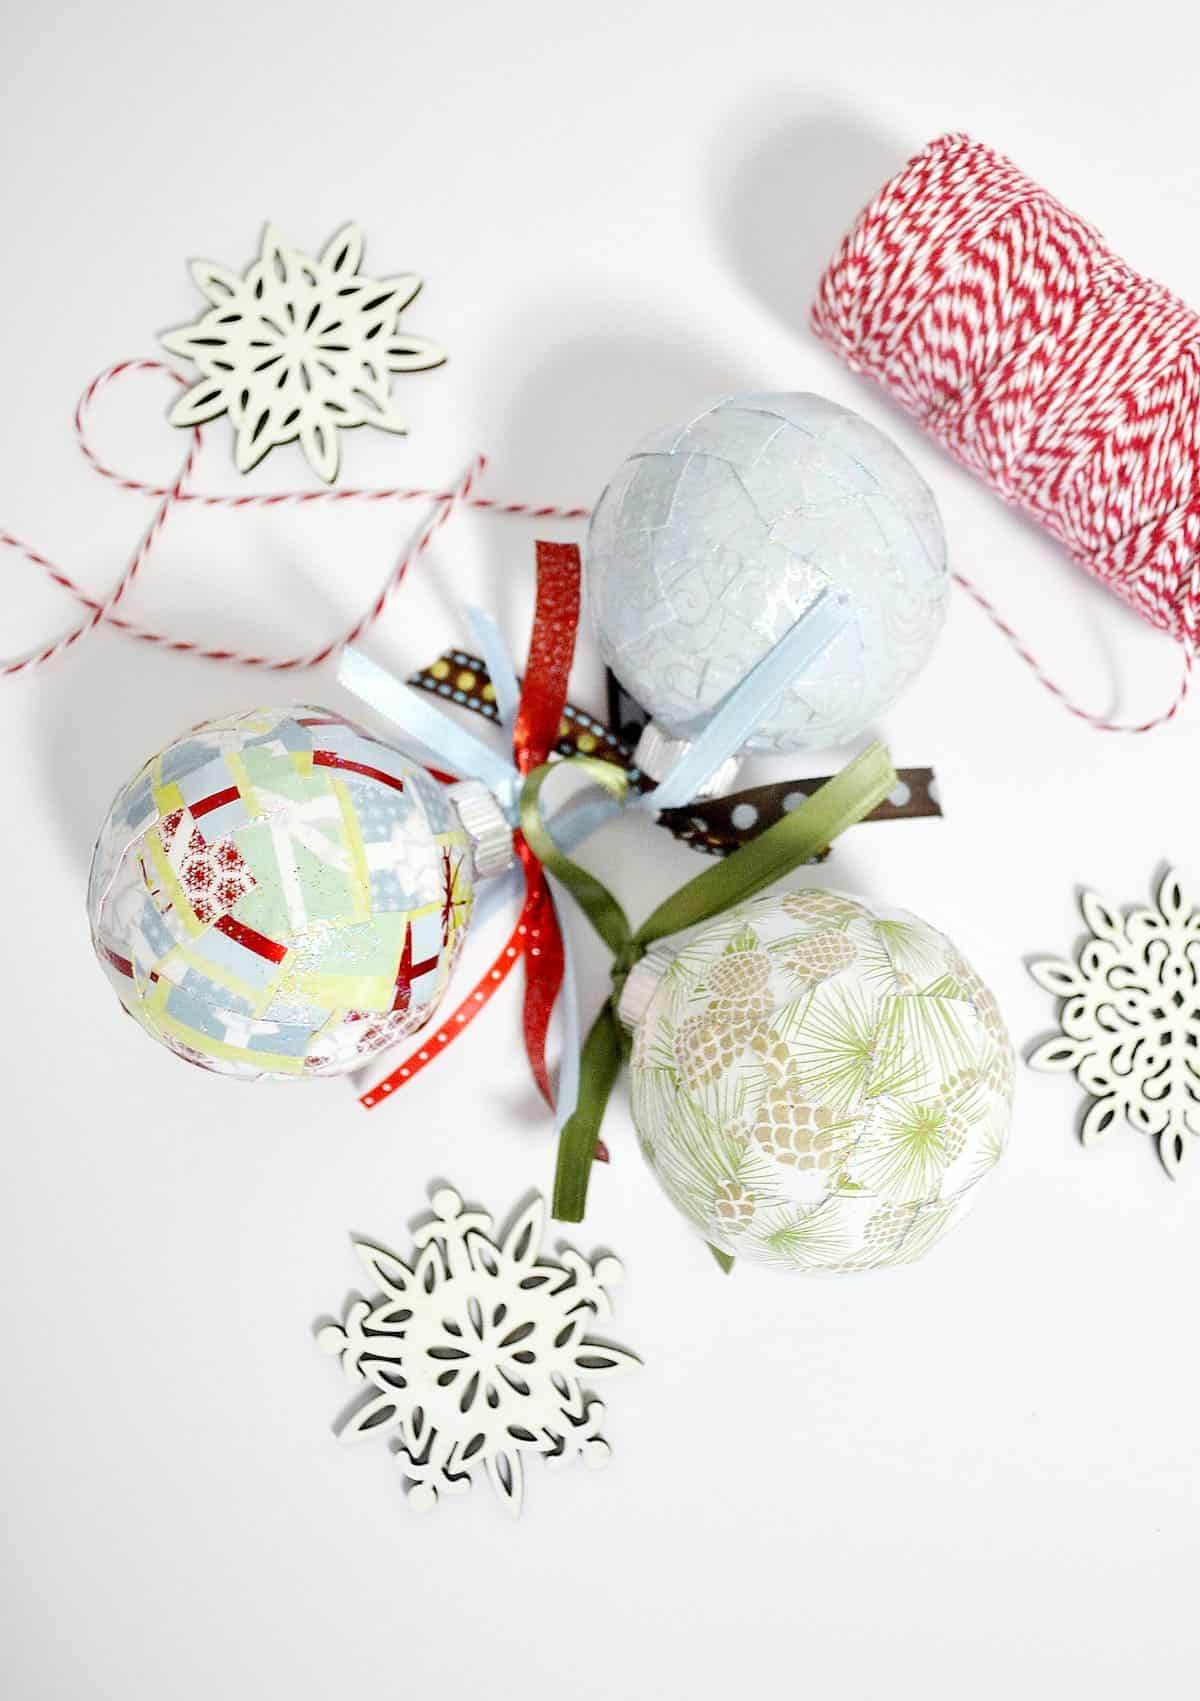 Use paper scraps you've saved or small squares of your favorite holiday scrapbook papers to make these unique DIY Christmas ornaments!